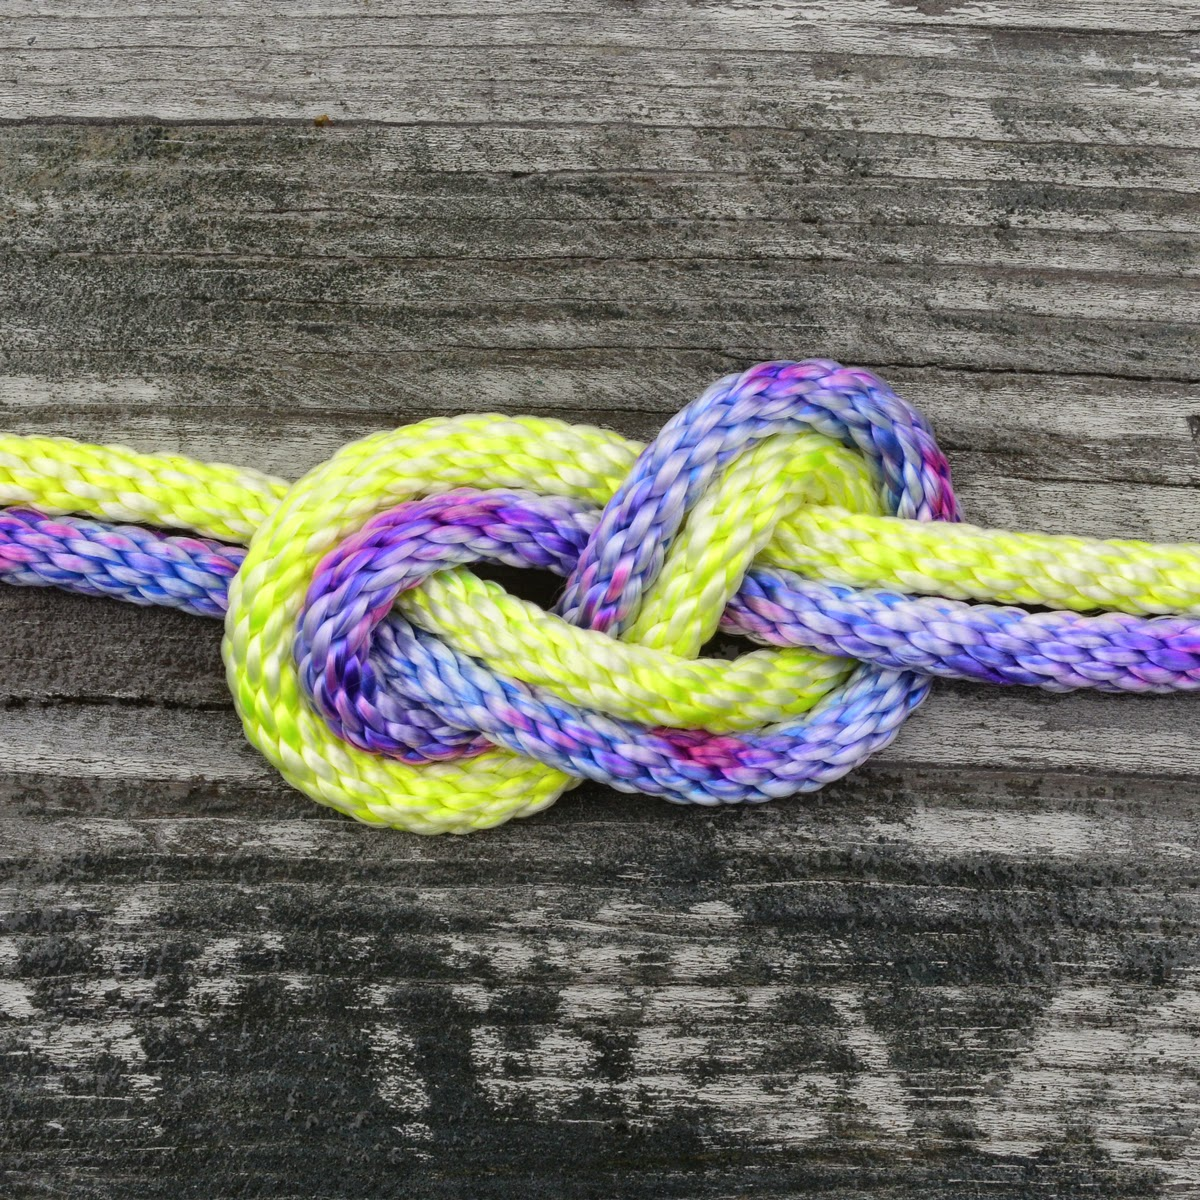 so i make stuff dyeing rope for crafting